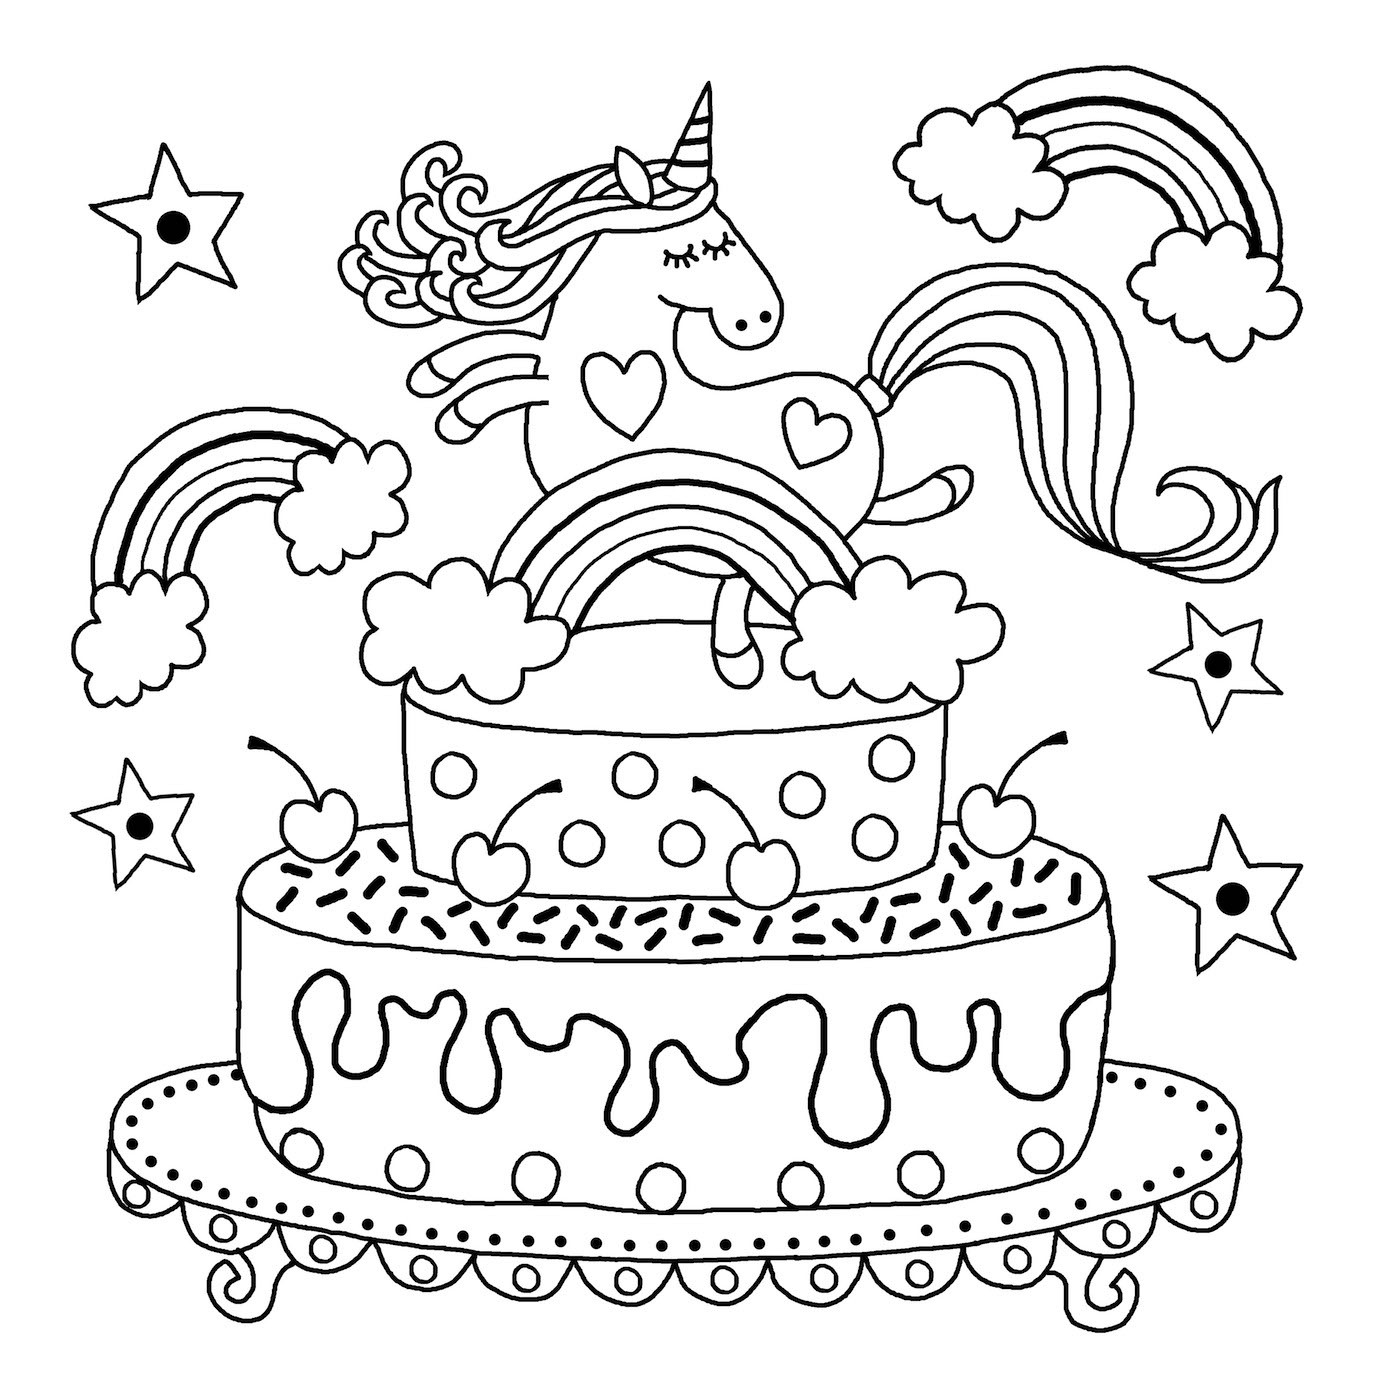 Best ideas about Coloring Pages For Kids To Print Unicorn . Save or Pin Downloadable unicorn colouring page Michael O Mara Books Now.